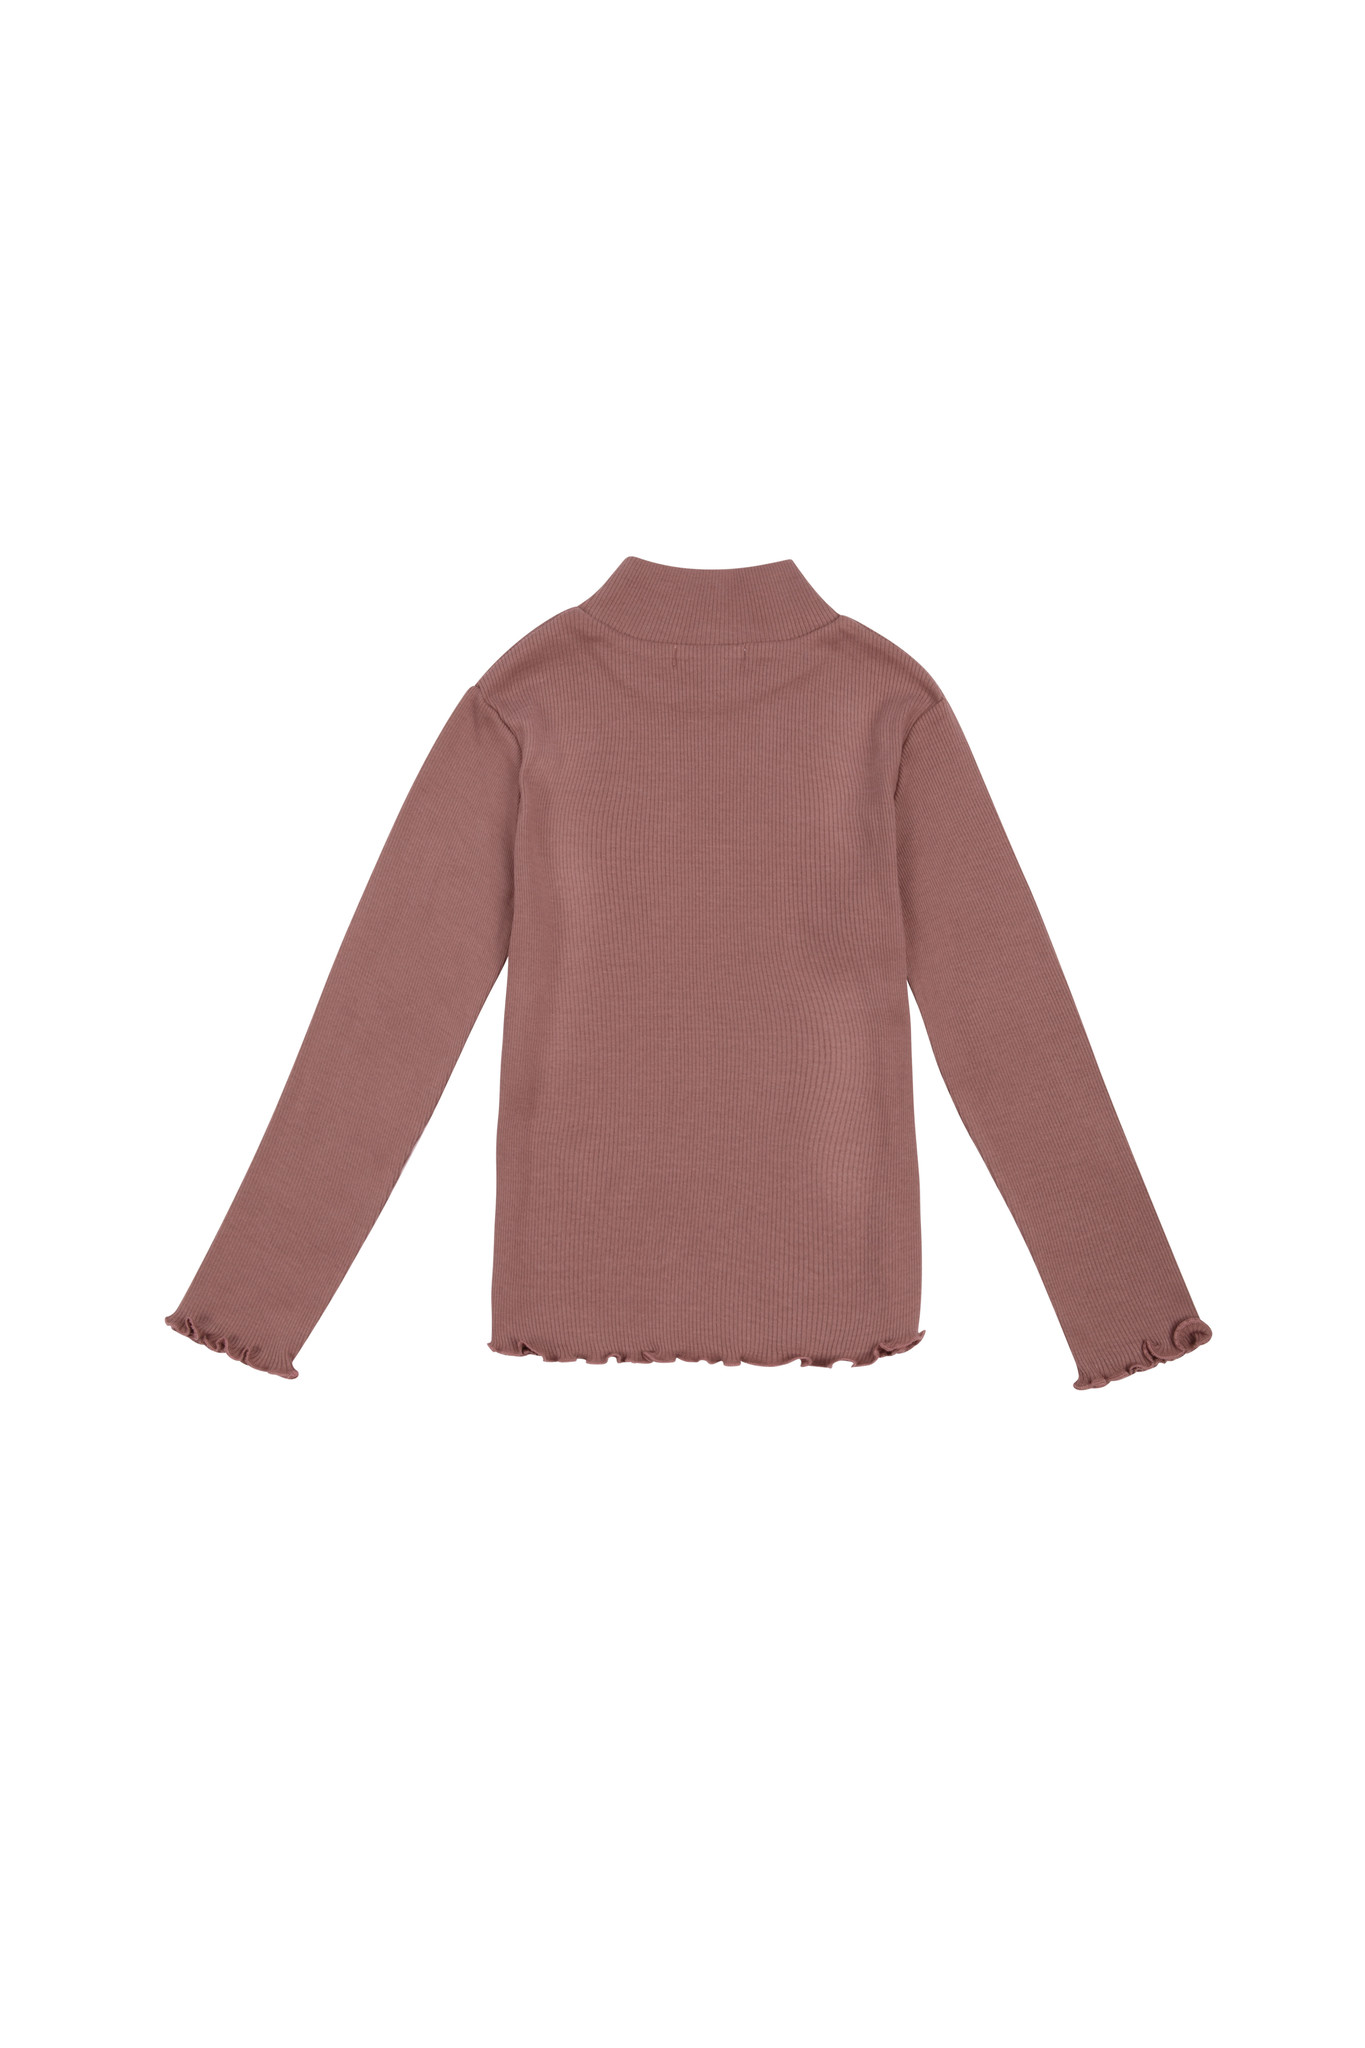 Betsy high neck - Rose Taupe-2